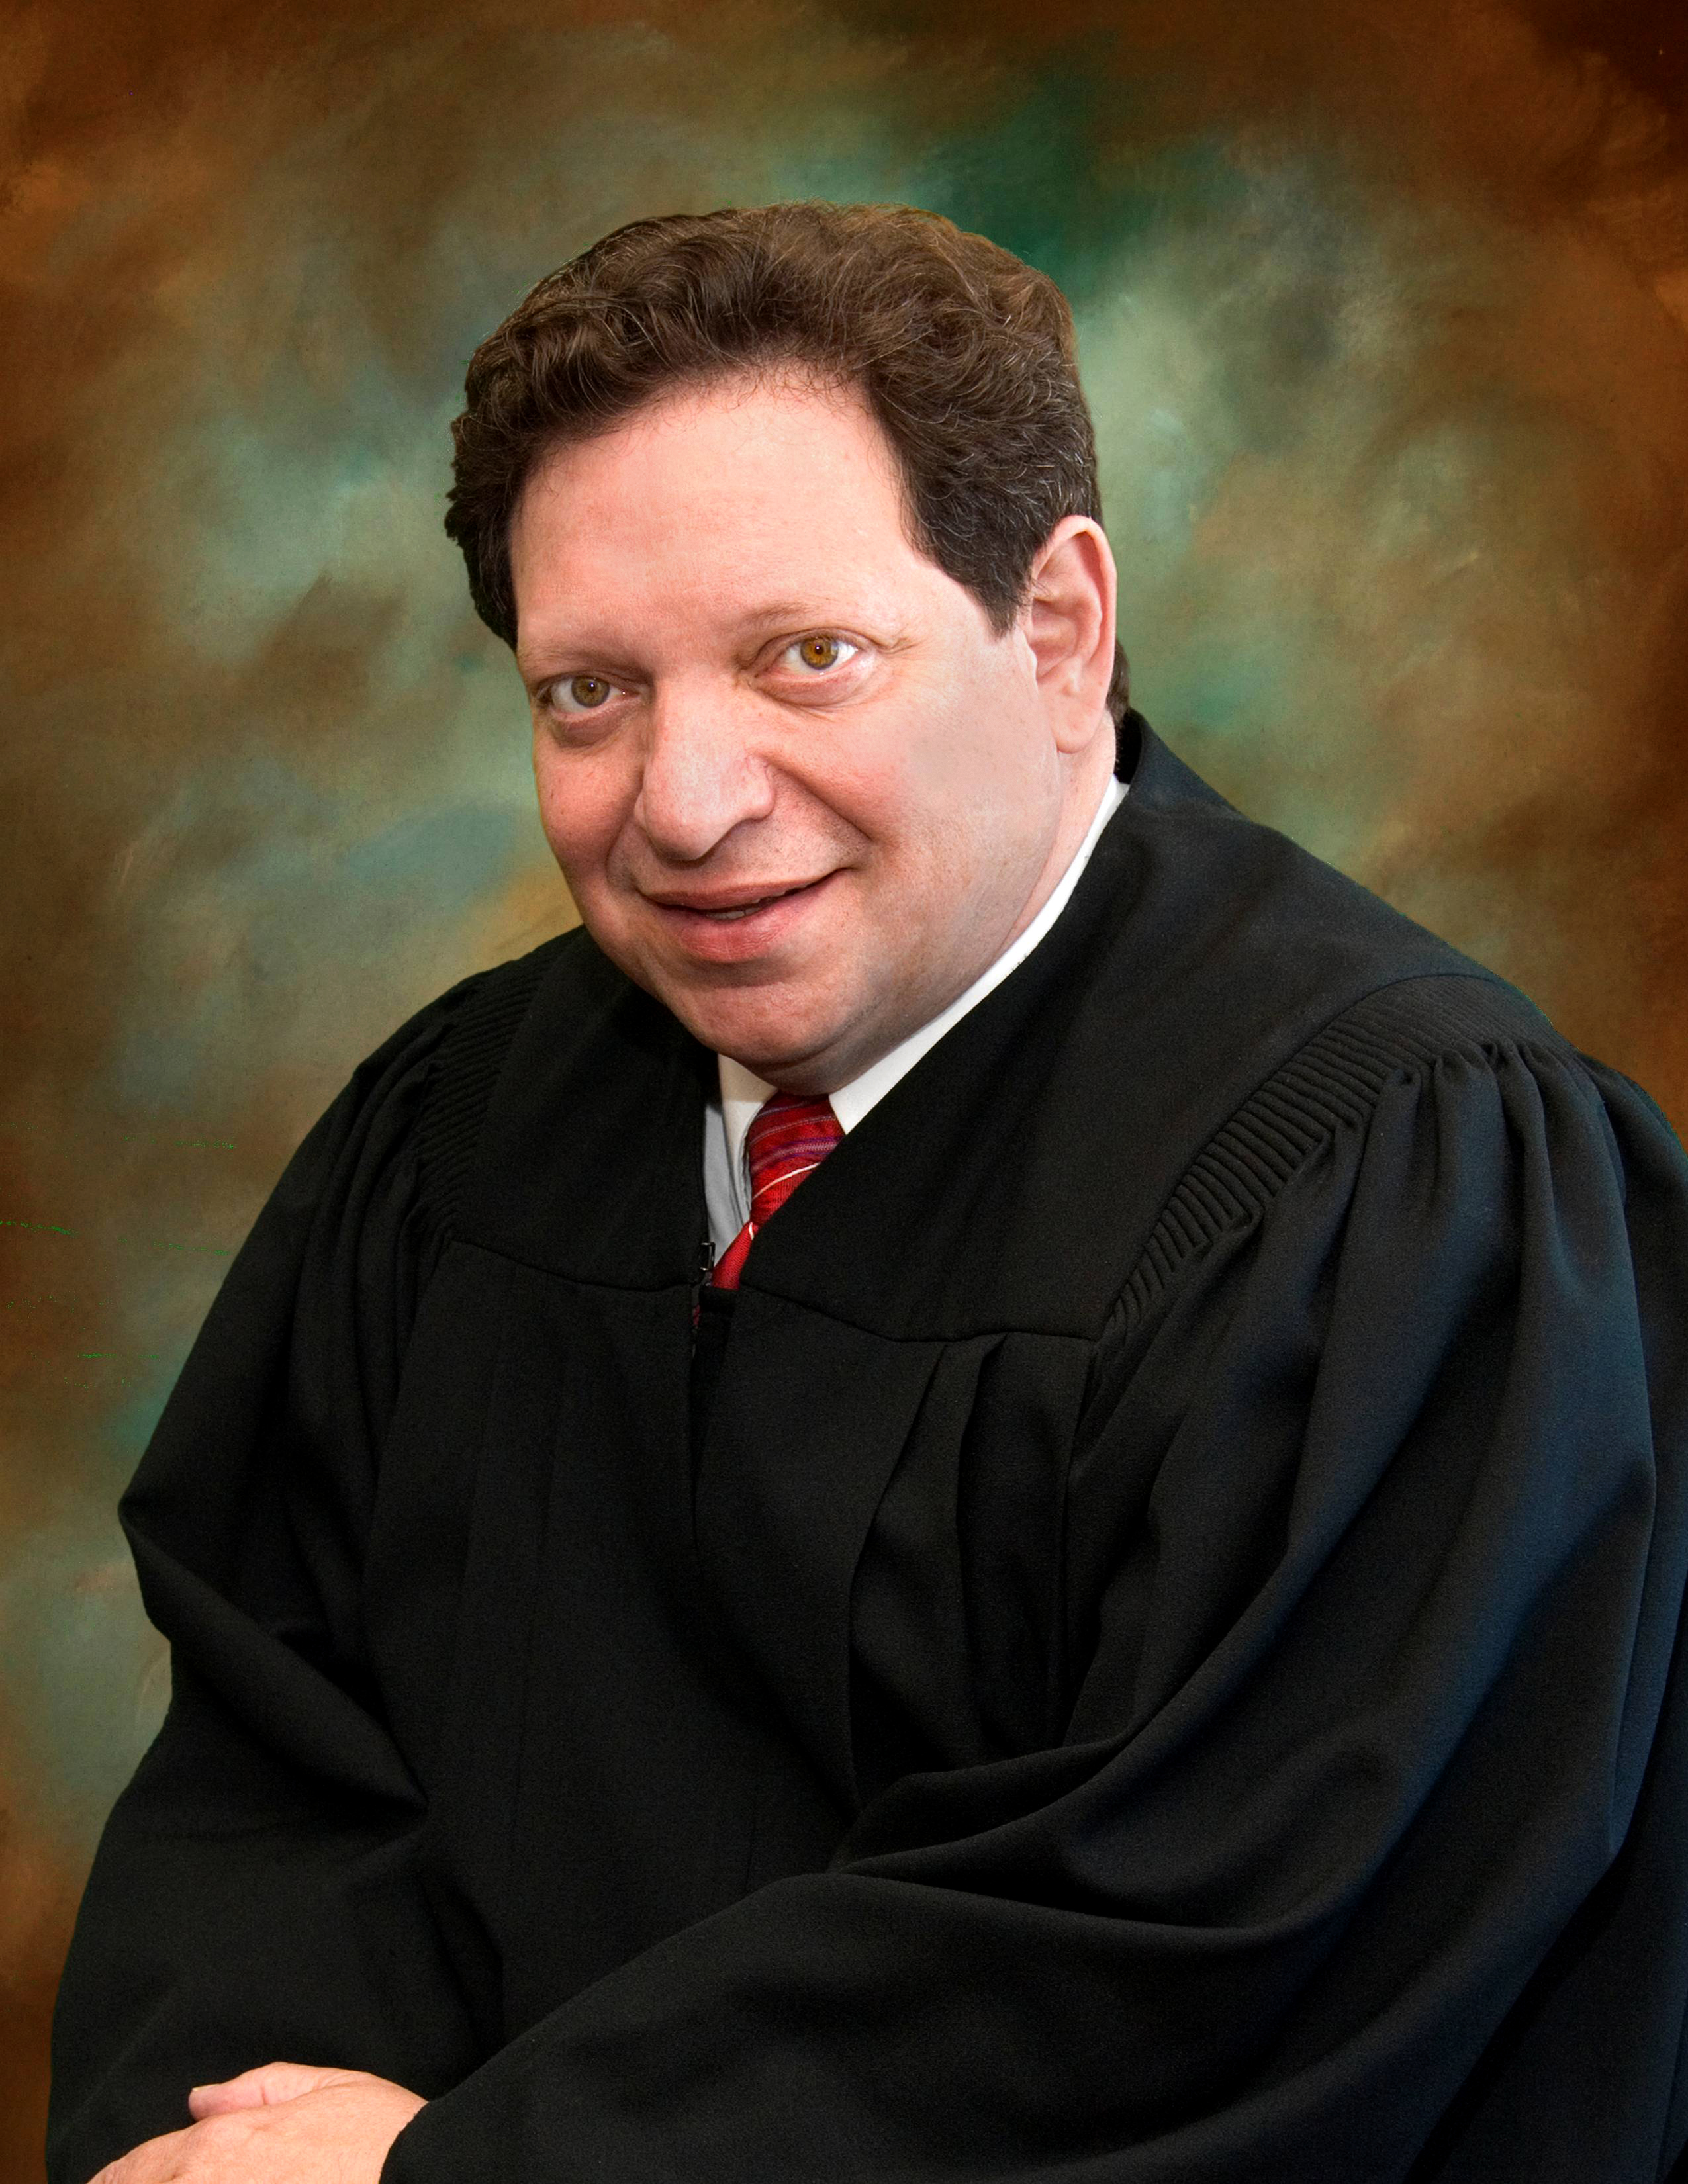 new york supreme court justice to speak at suny canton for constitution day. Black Bedroom Furniture Sets. Home Design Ideas